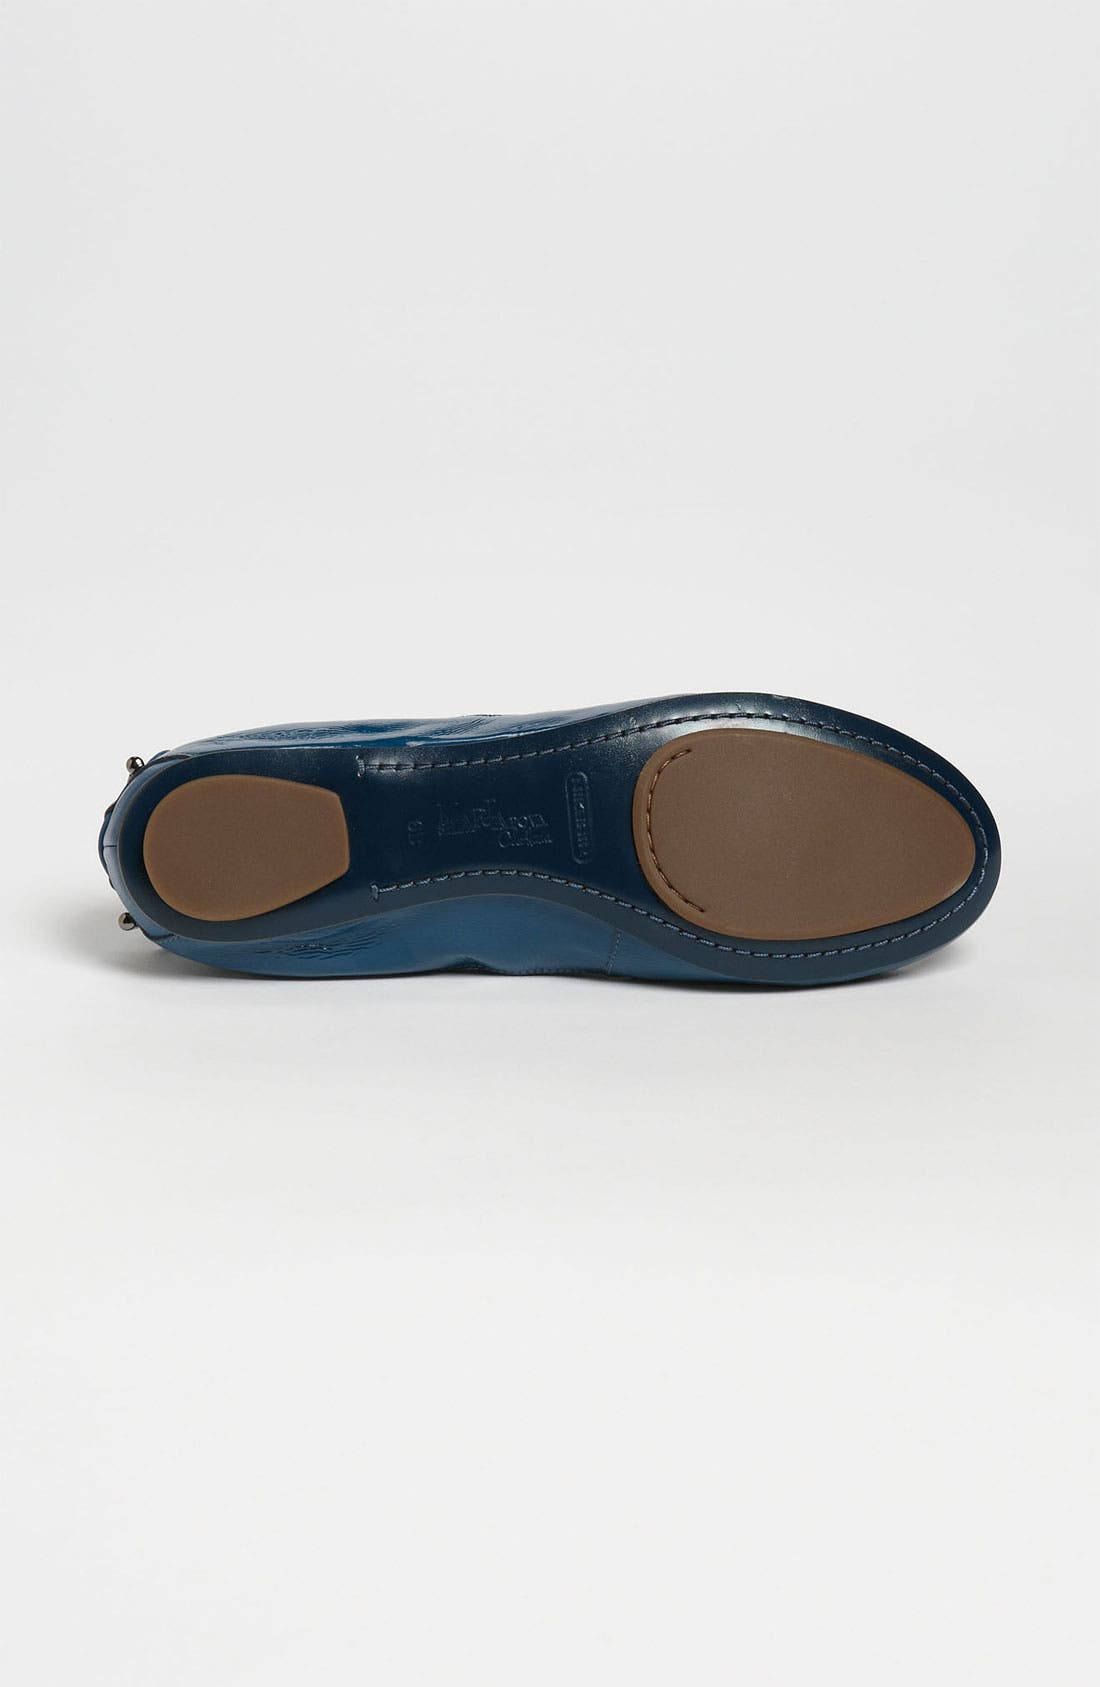 ,                             Maria Sharapova by Cole Haan 'Air Bacara' Flat,                             Alternate thumbnail 77, color,                             440